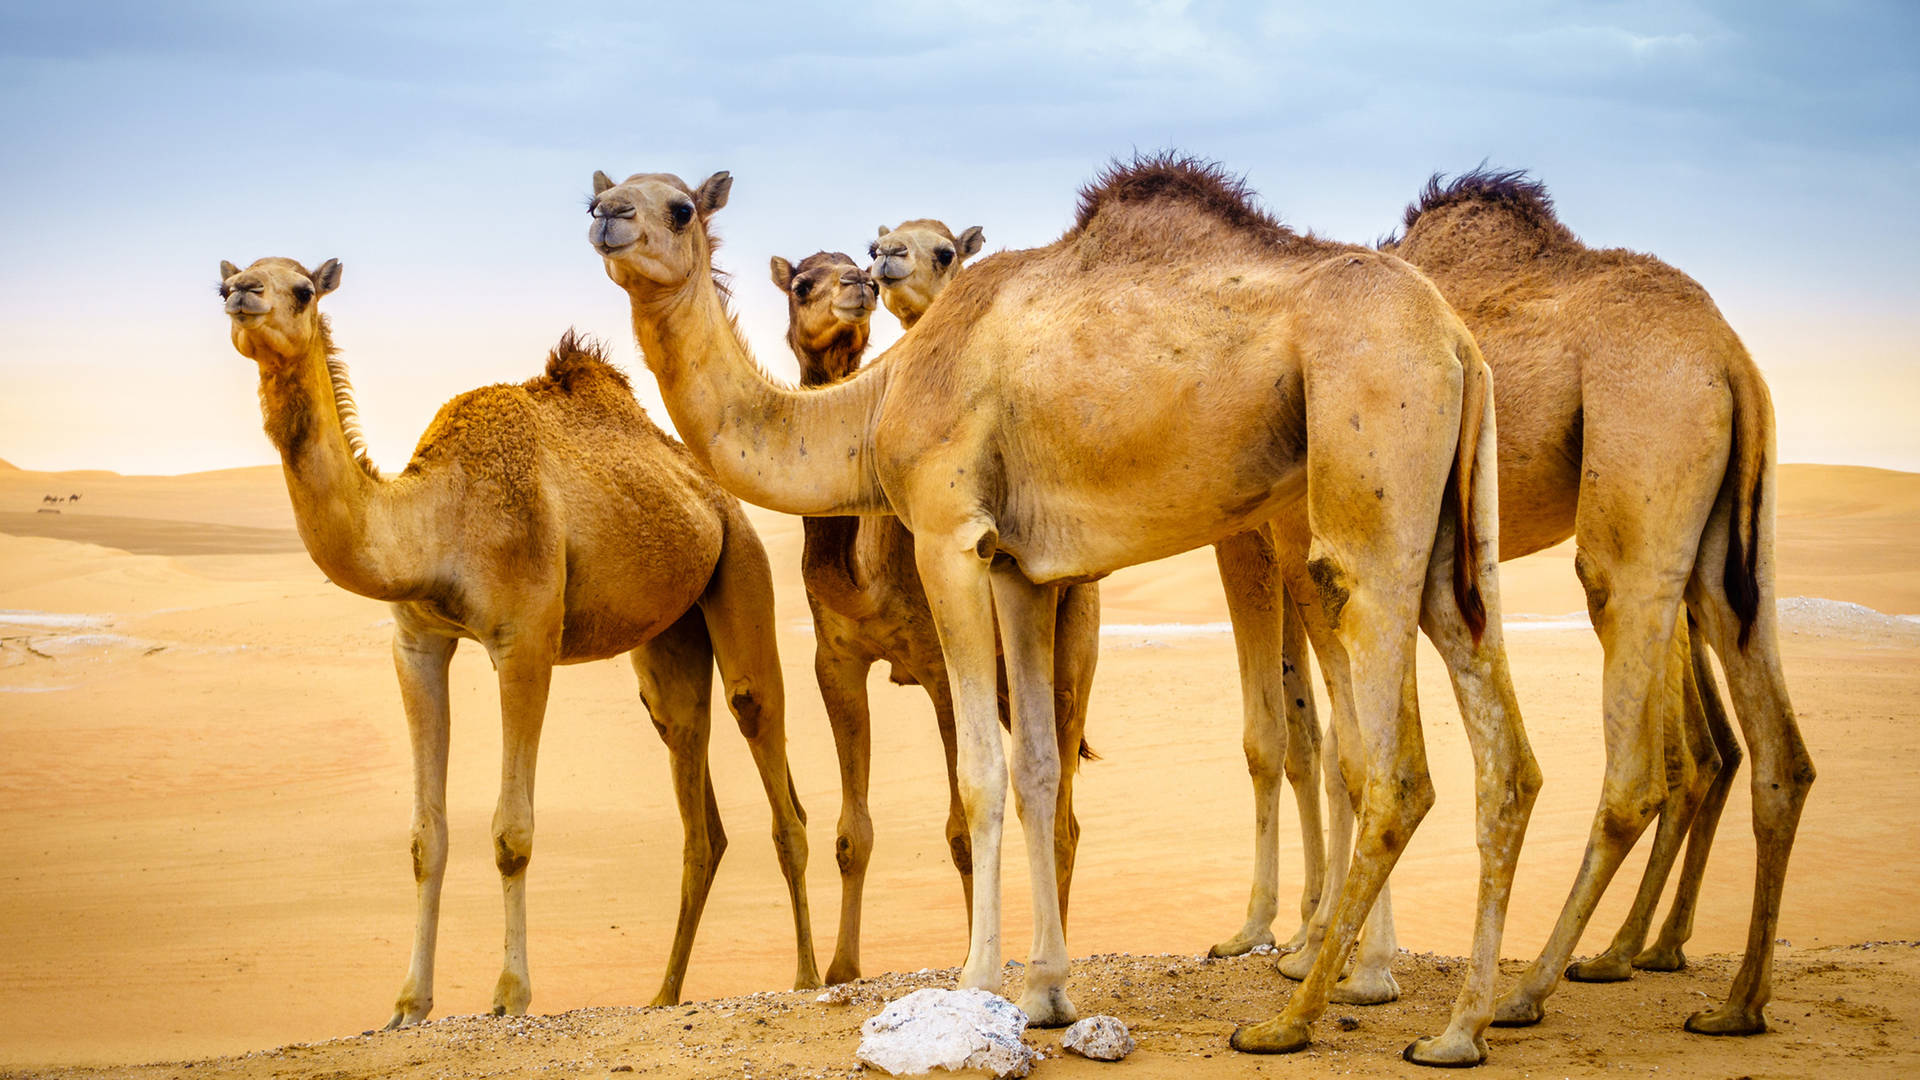 Camels in the desert near Al Ain